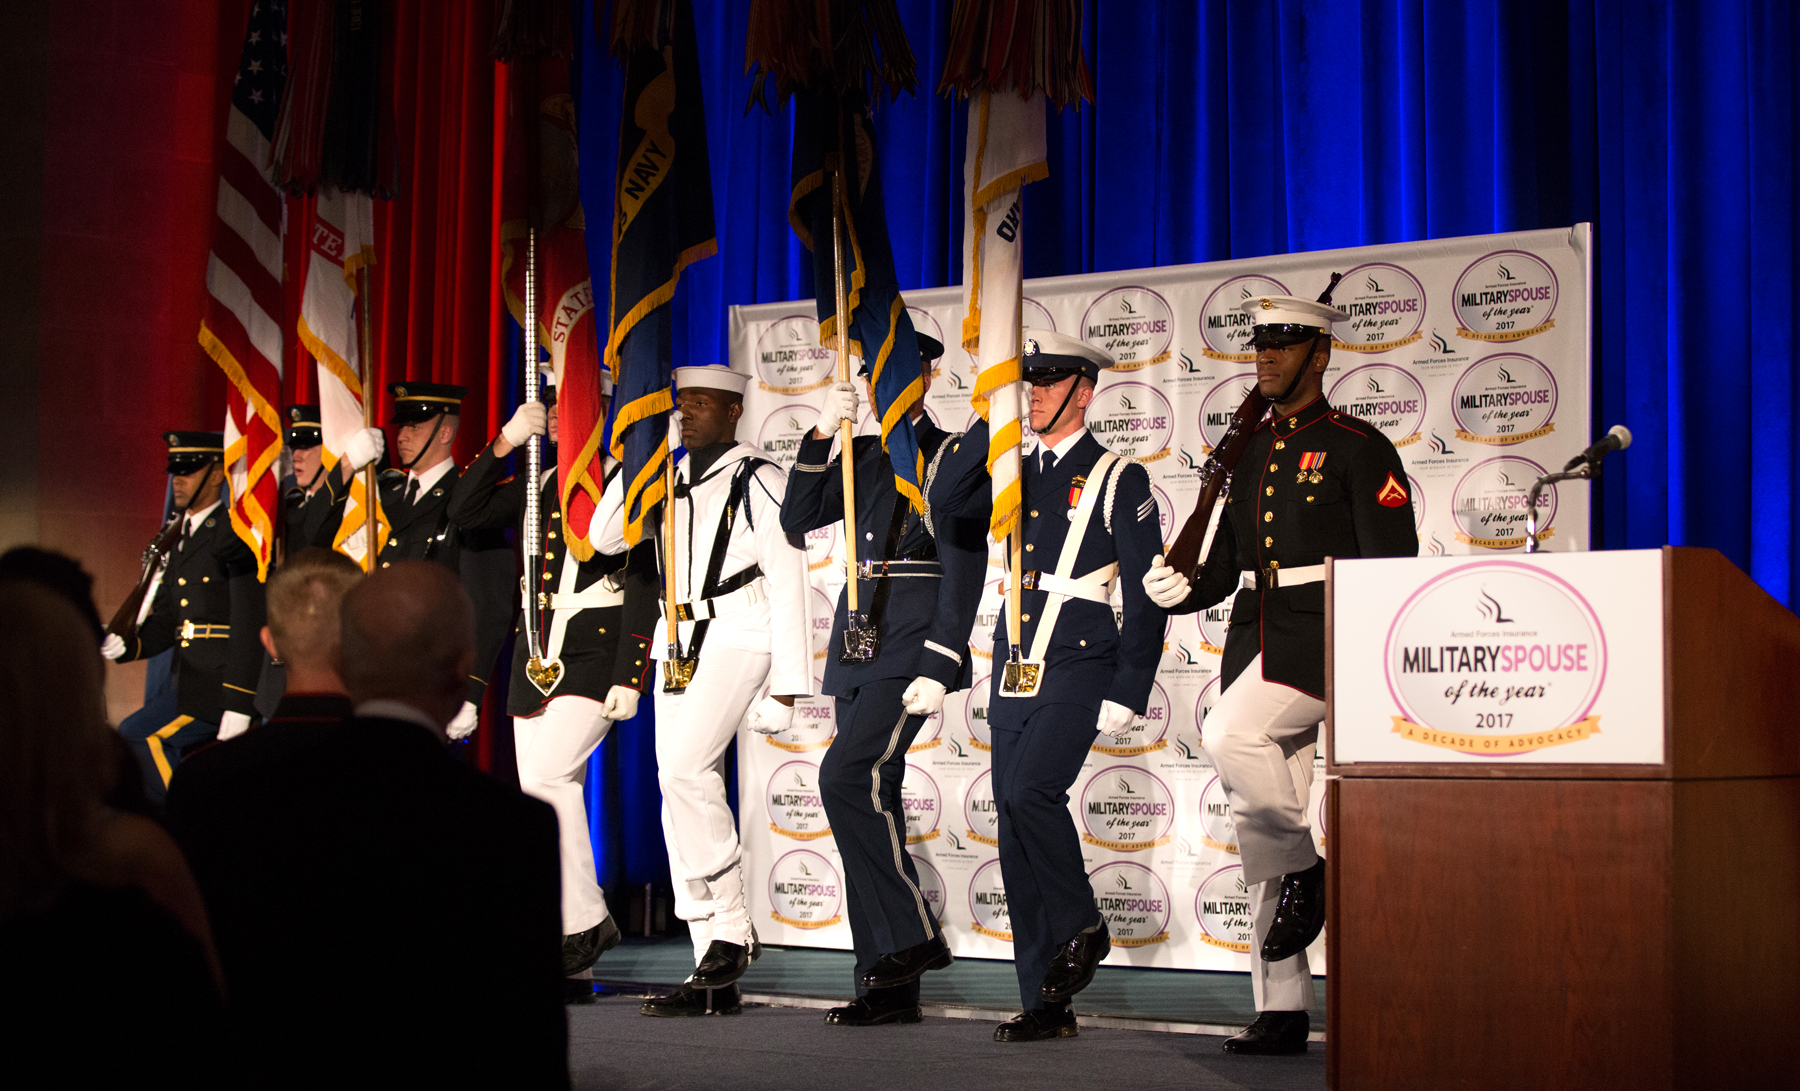 AFI Military Spouse of the Year Color Guard Podium